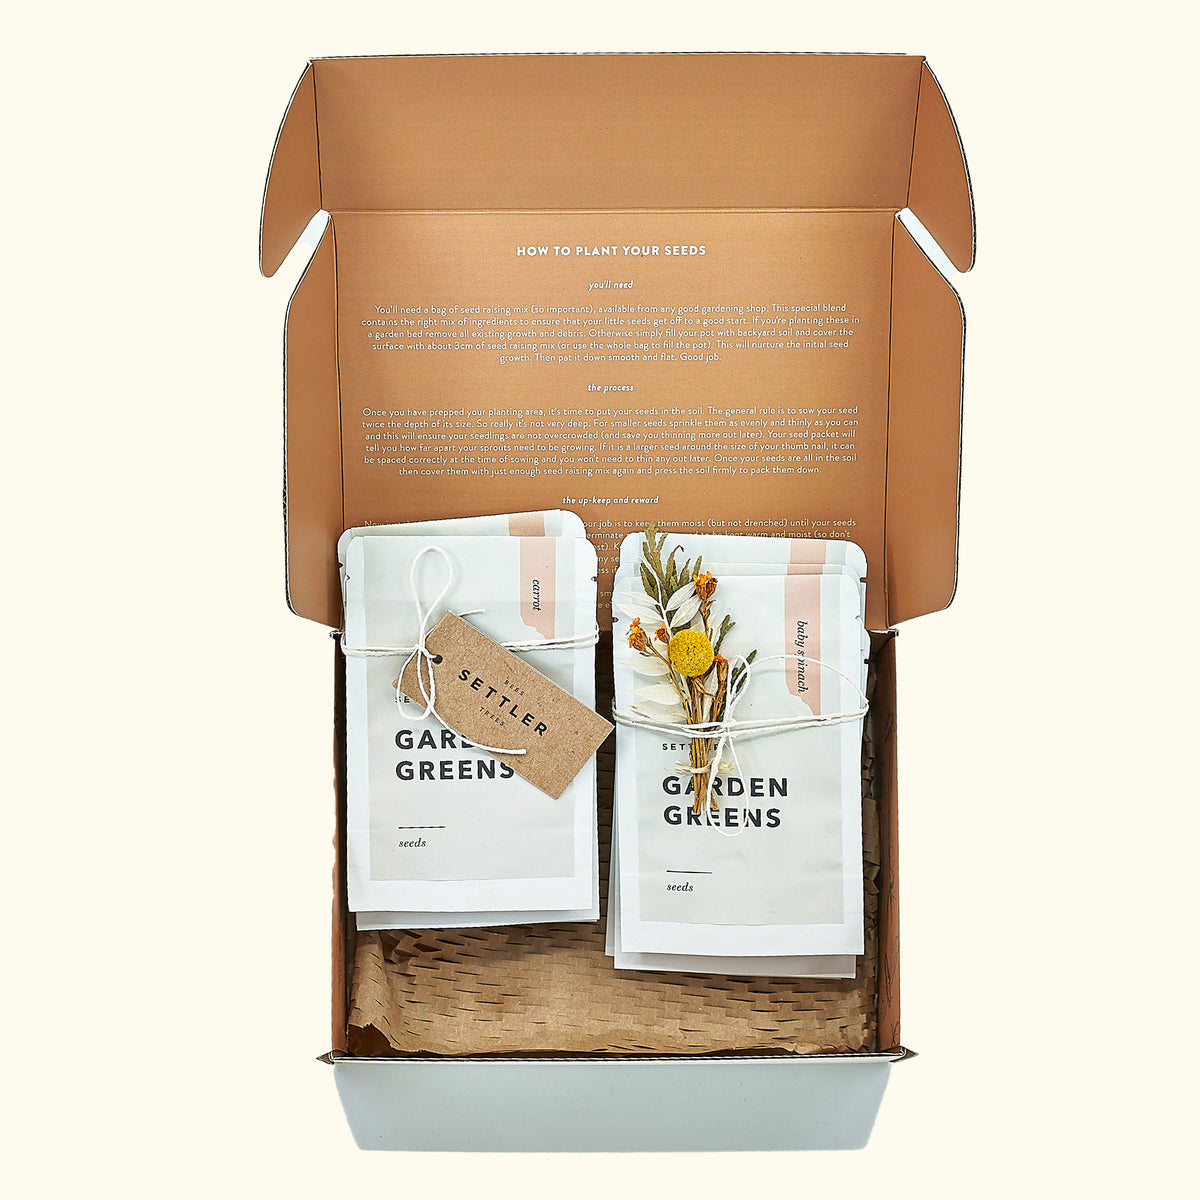 Settler Hives Garden Greens Seed Set